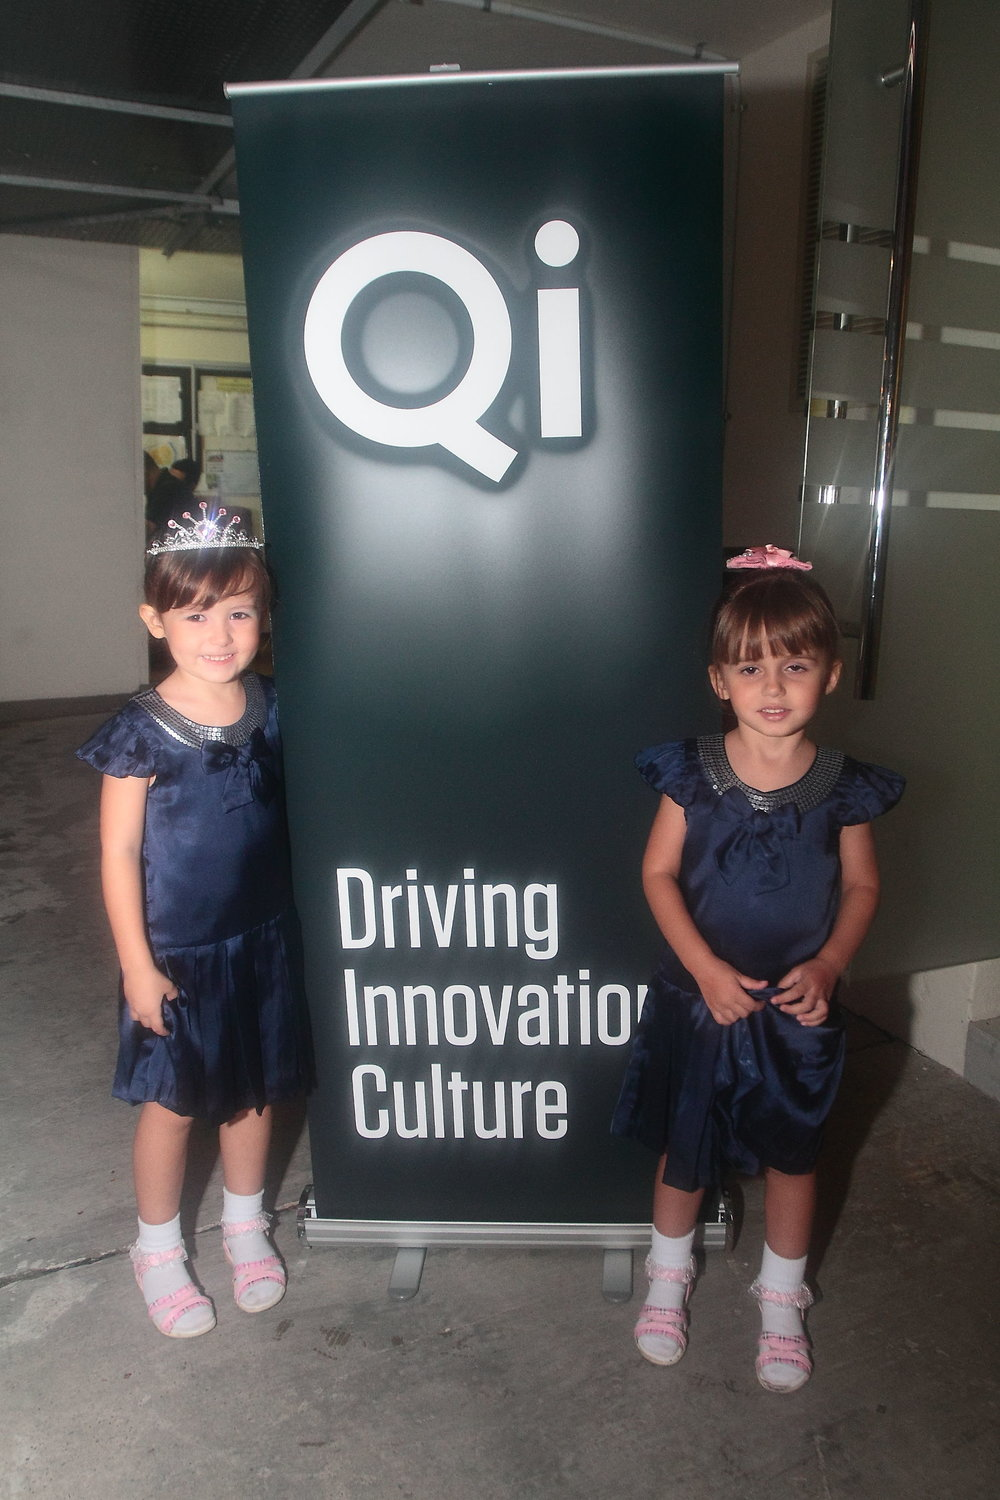 qi-global-2011-driving-innovation-culture-007.jpg